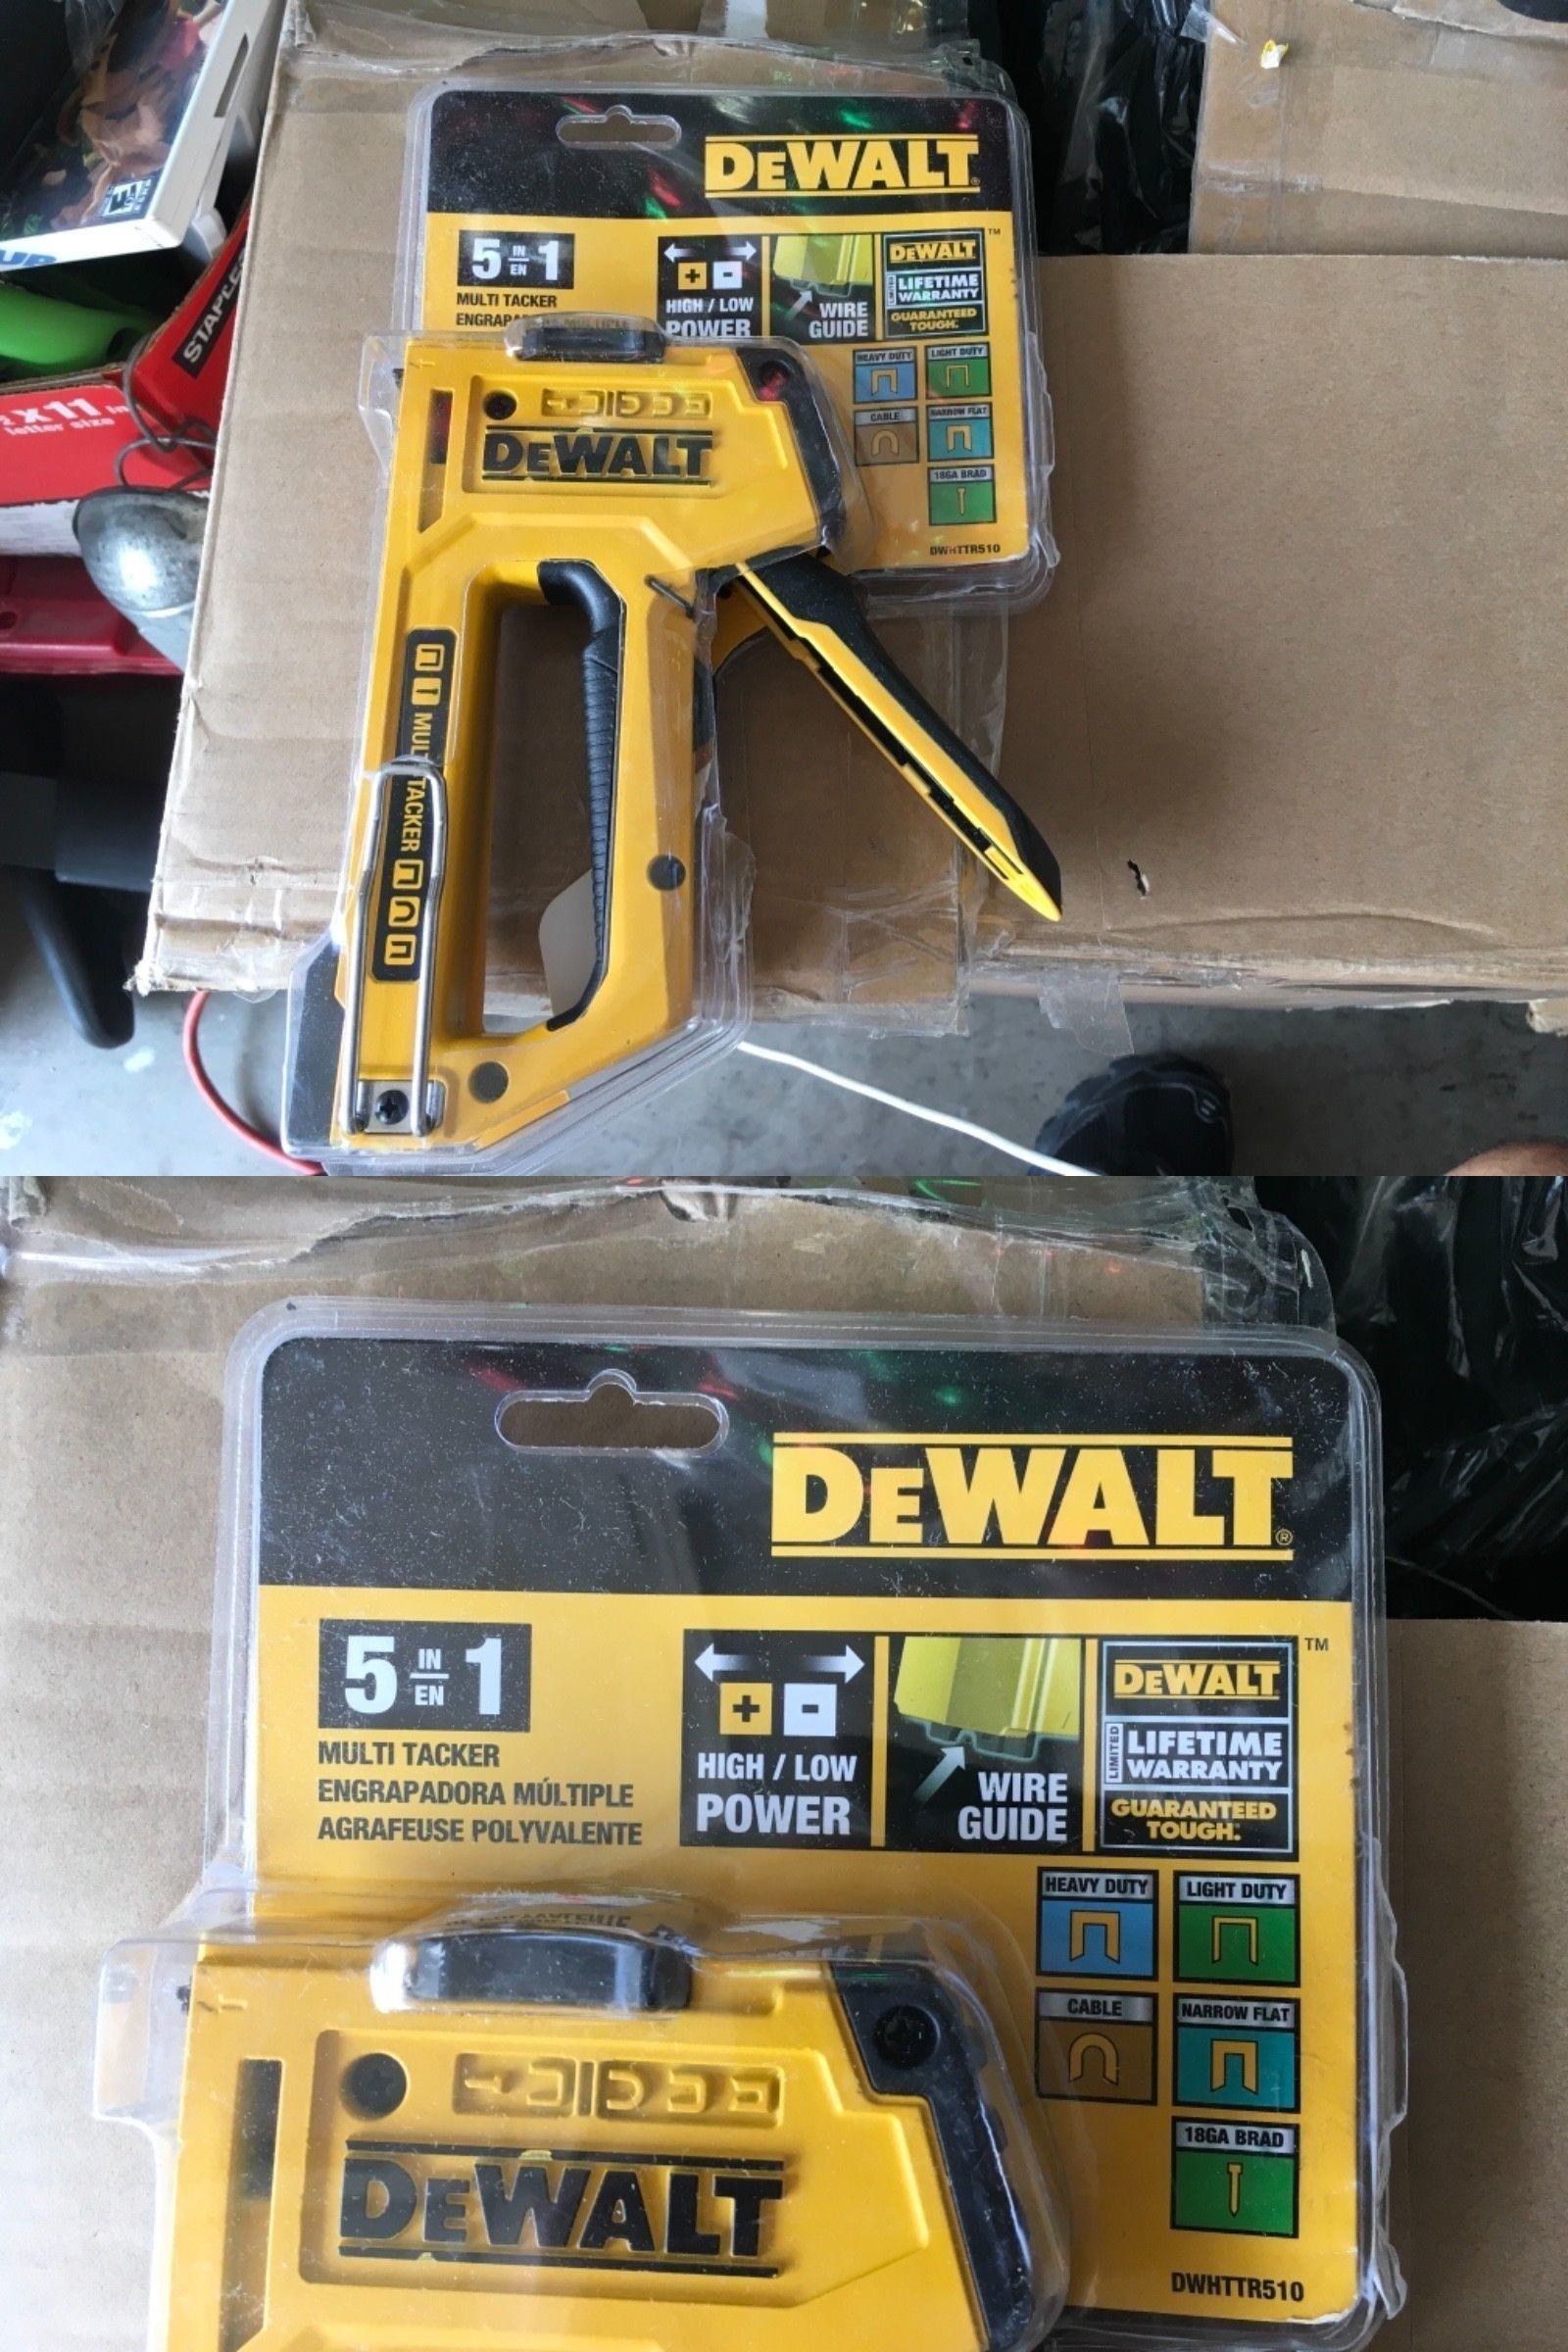 Nail And Staple Guns 122828 Dewalt 5 In 1 Multi Tacker